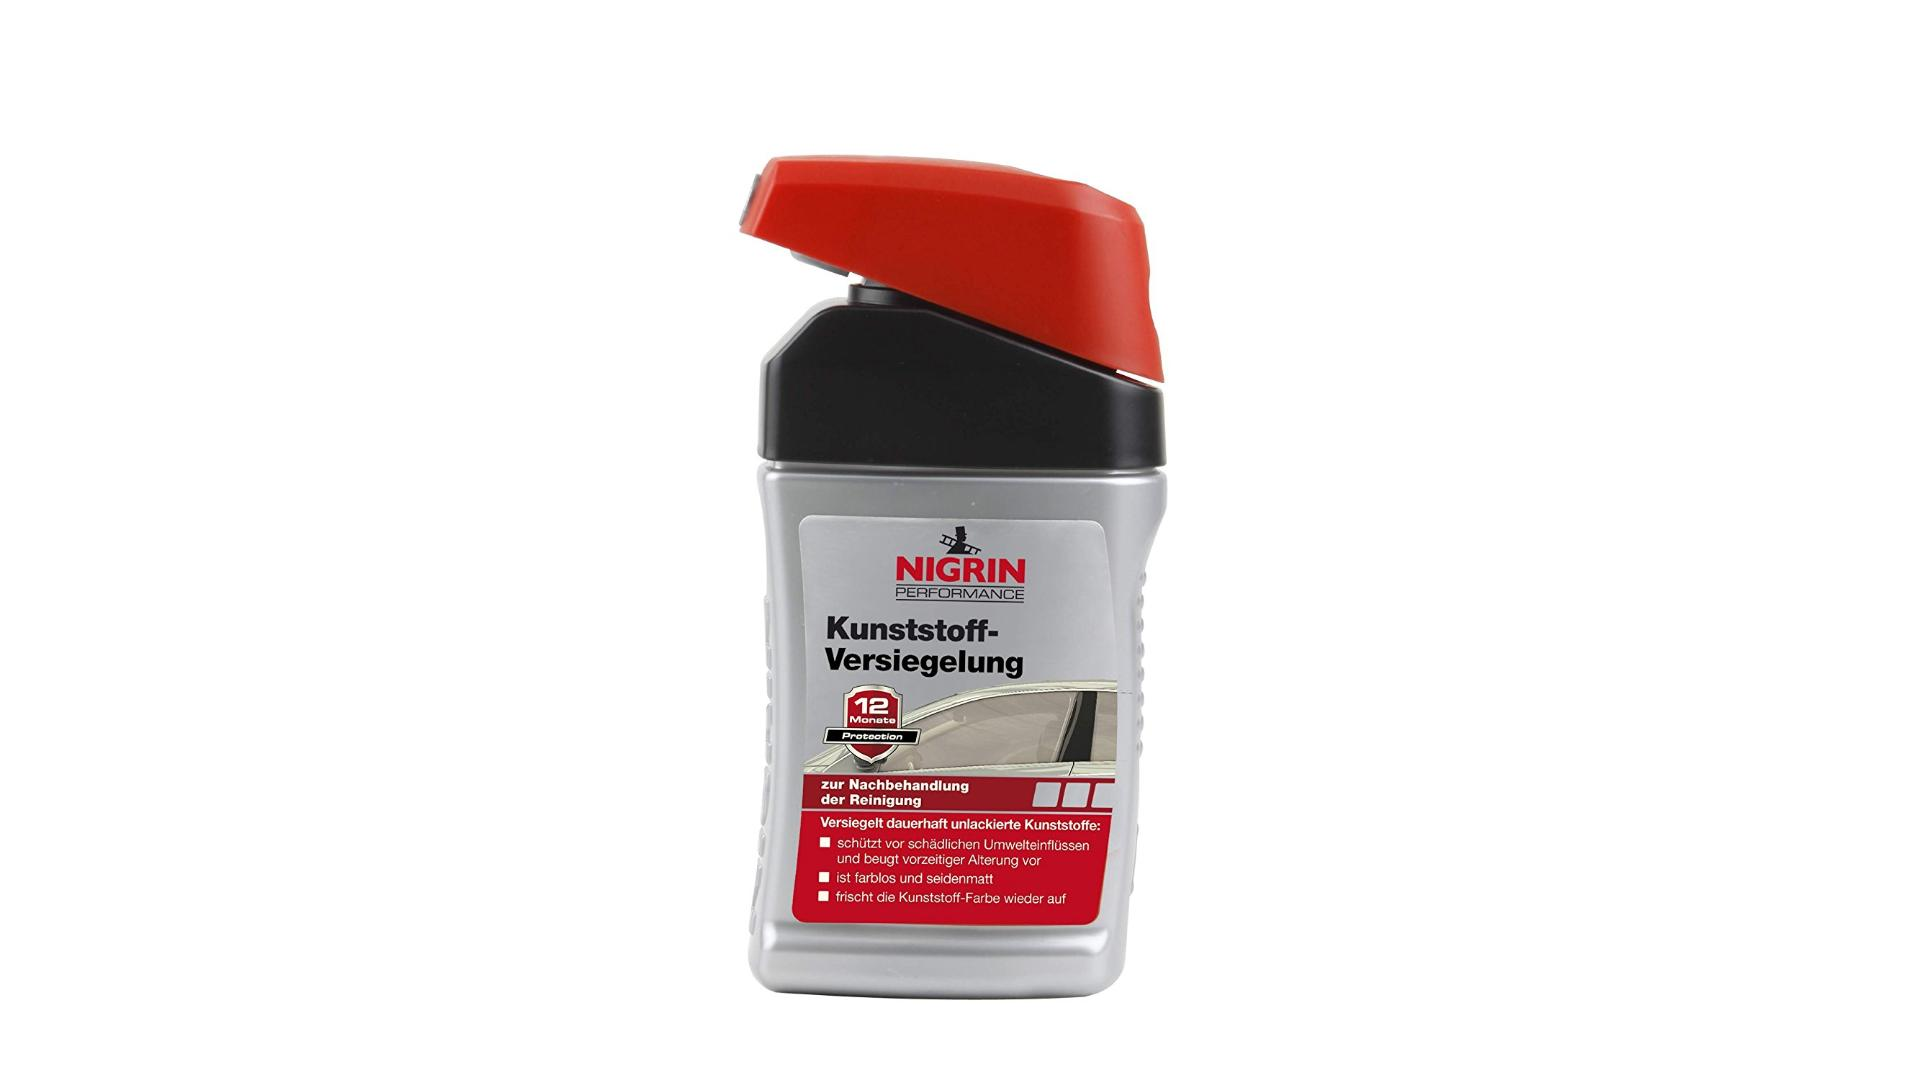 NIGRIN Protection and conservation of plastic parts 300ml